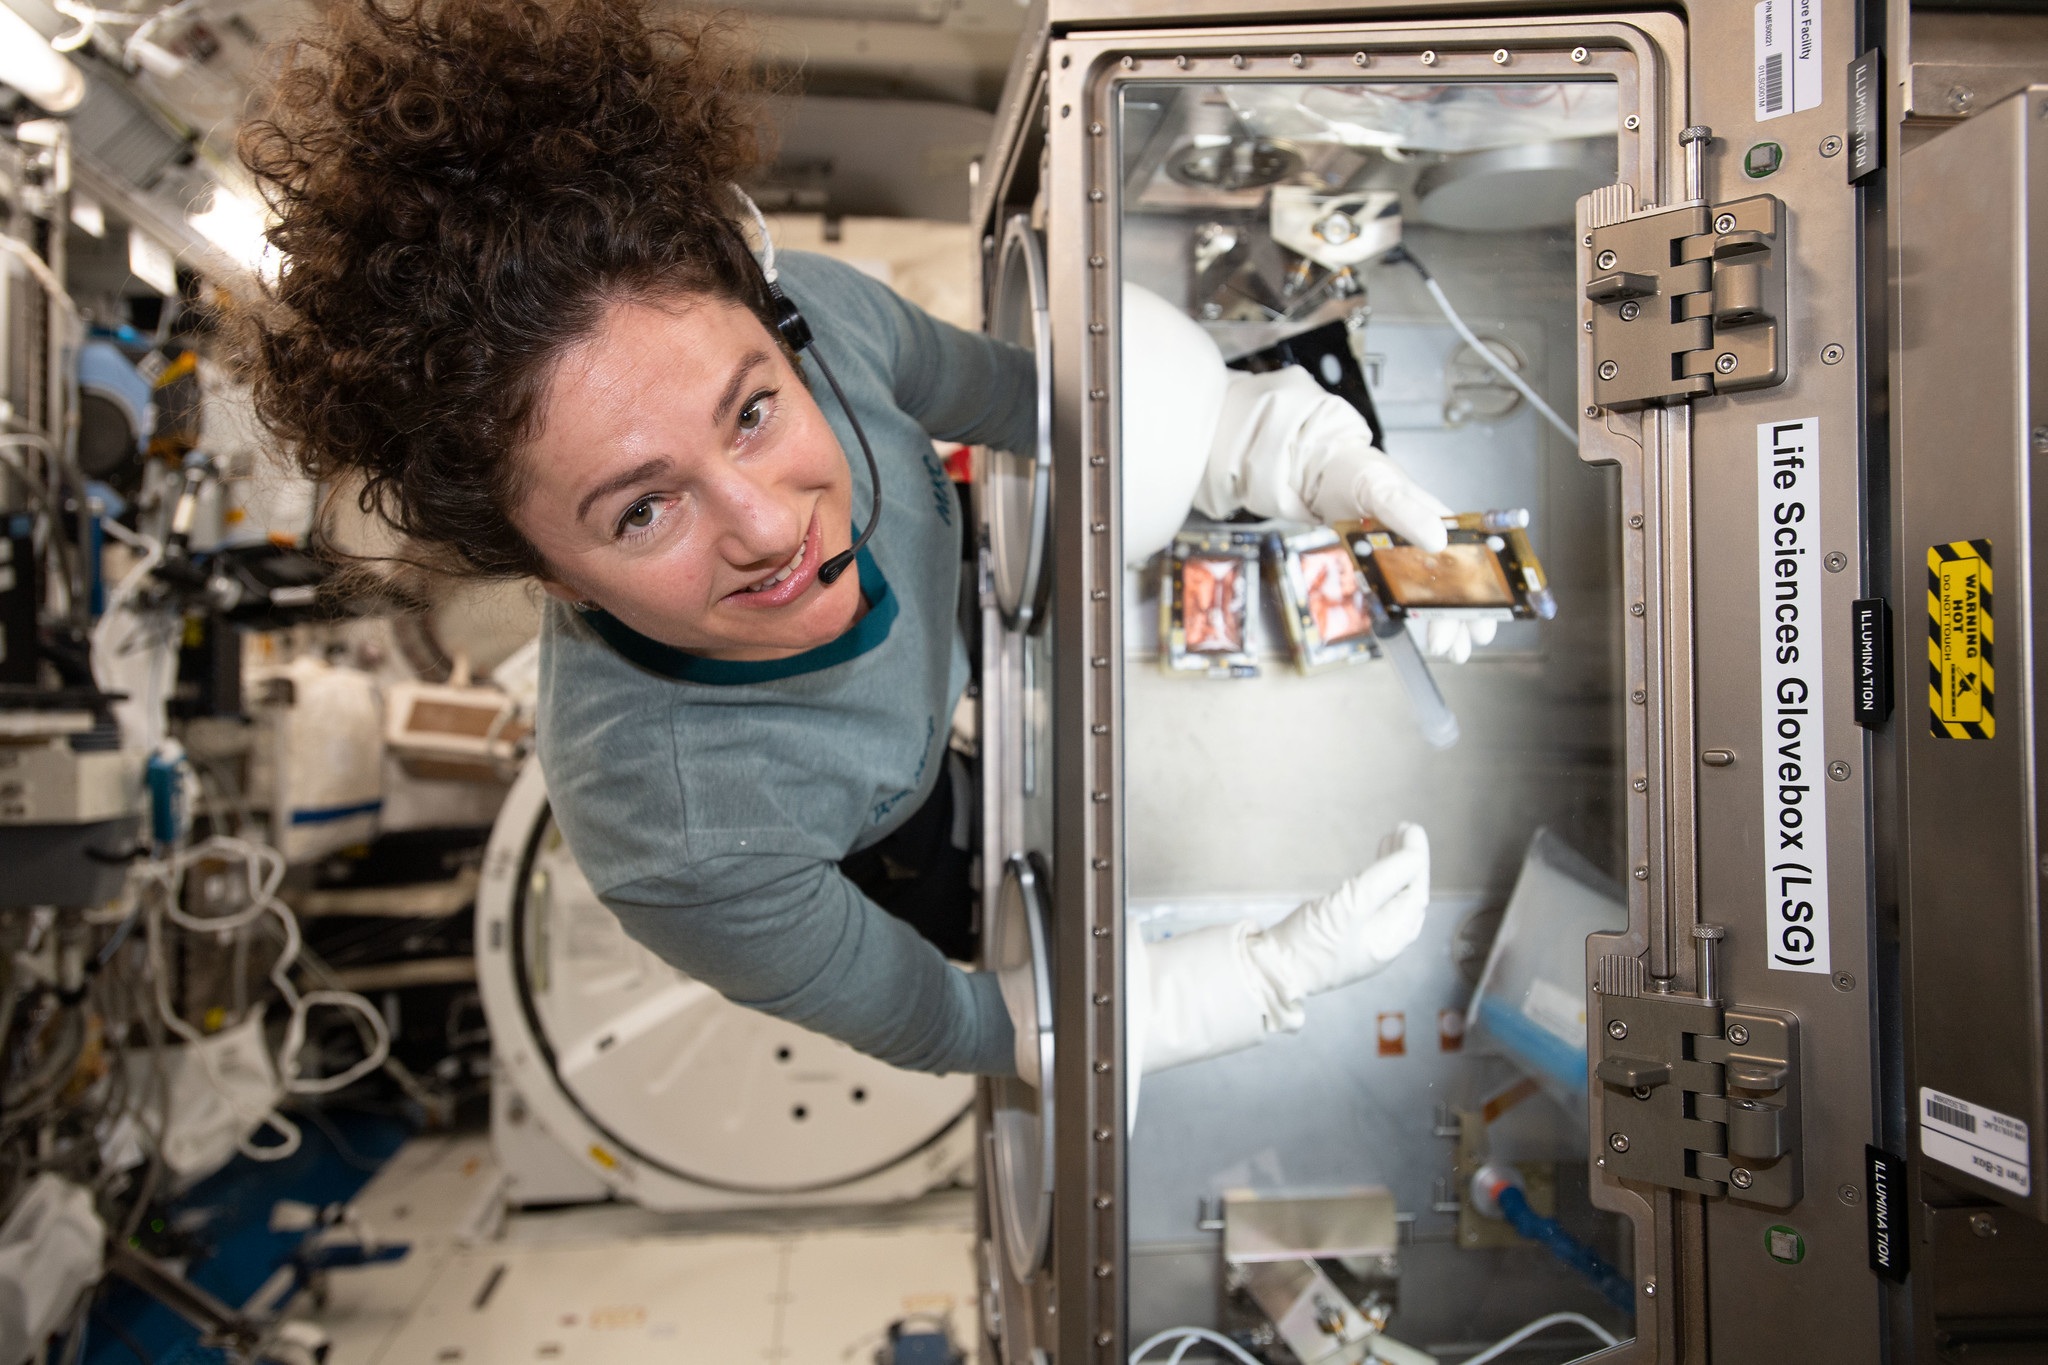 Jessica Meir is one of three astronauts on the International Space Station today.